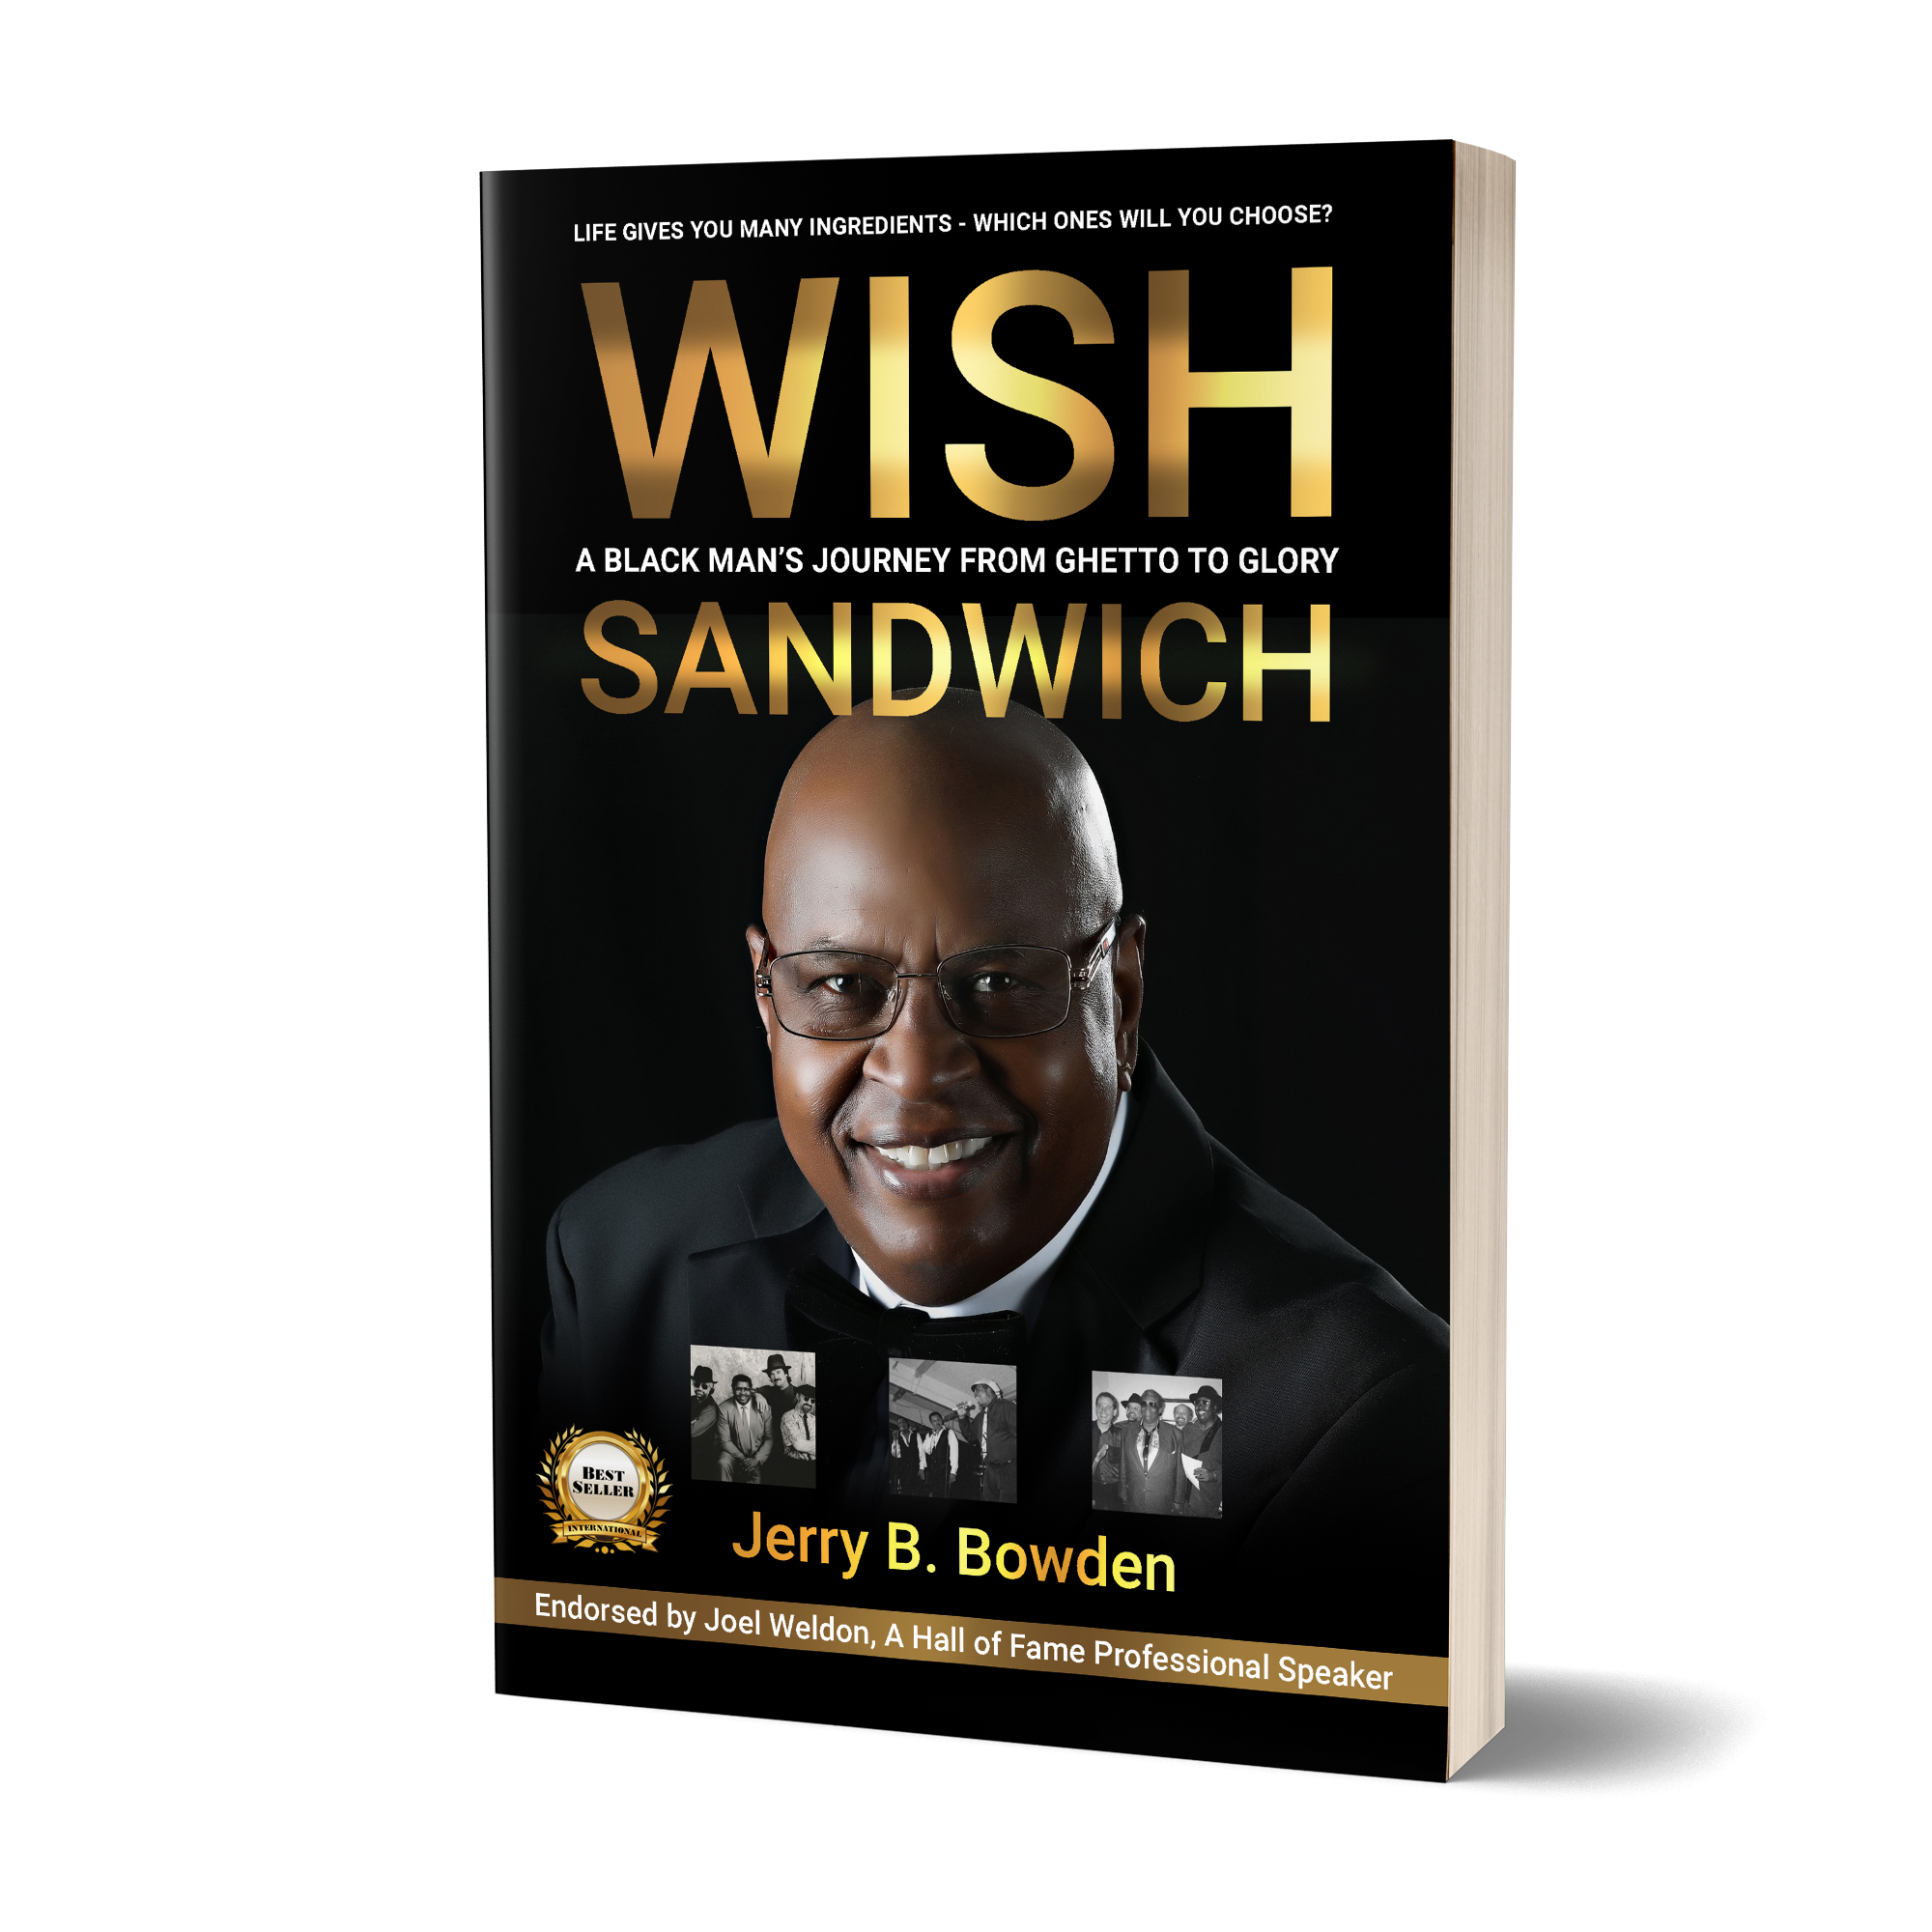 Image of Jerry B. Bowden's book titled, Wish Sandwich, a black man's journey from ghetto to glory